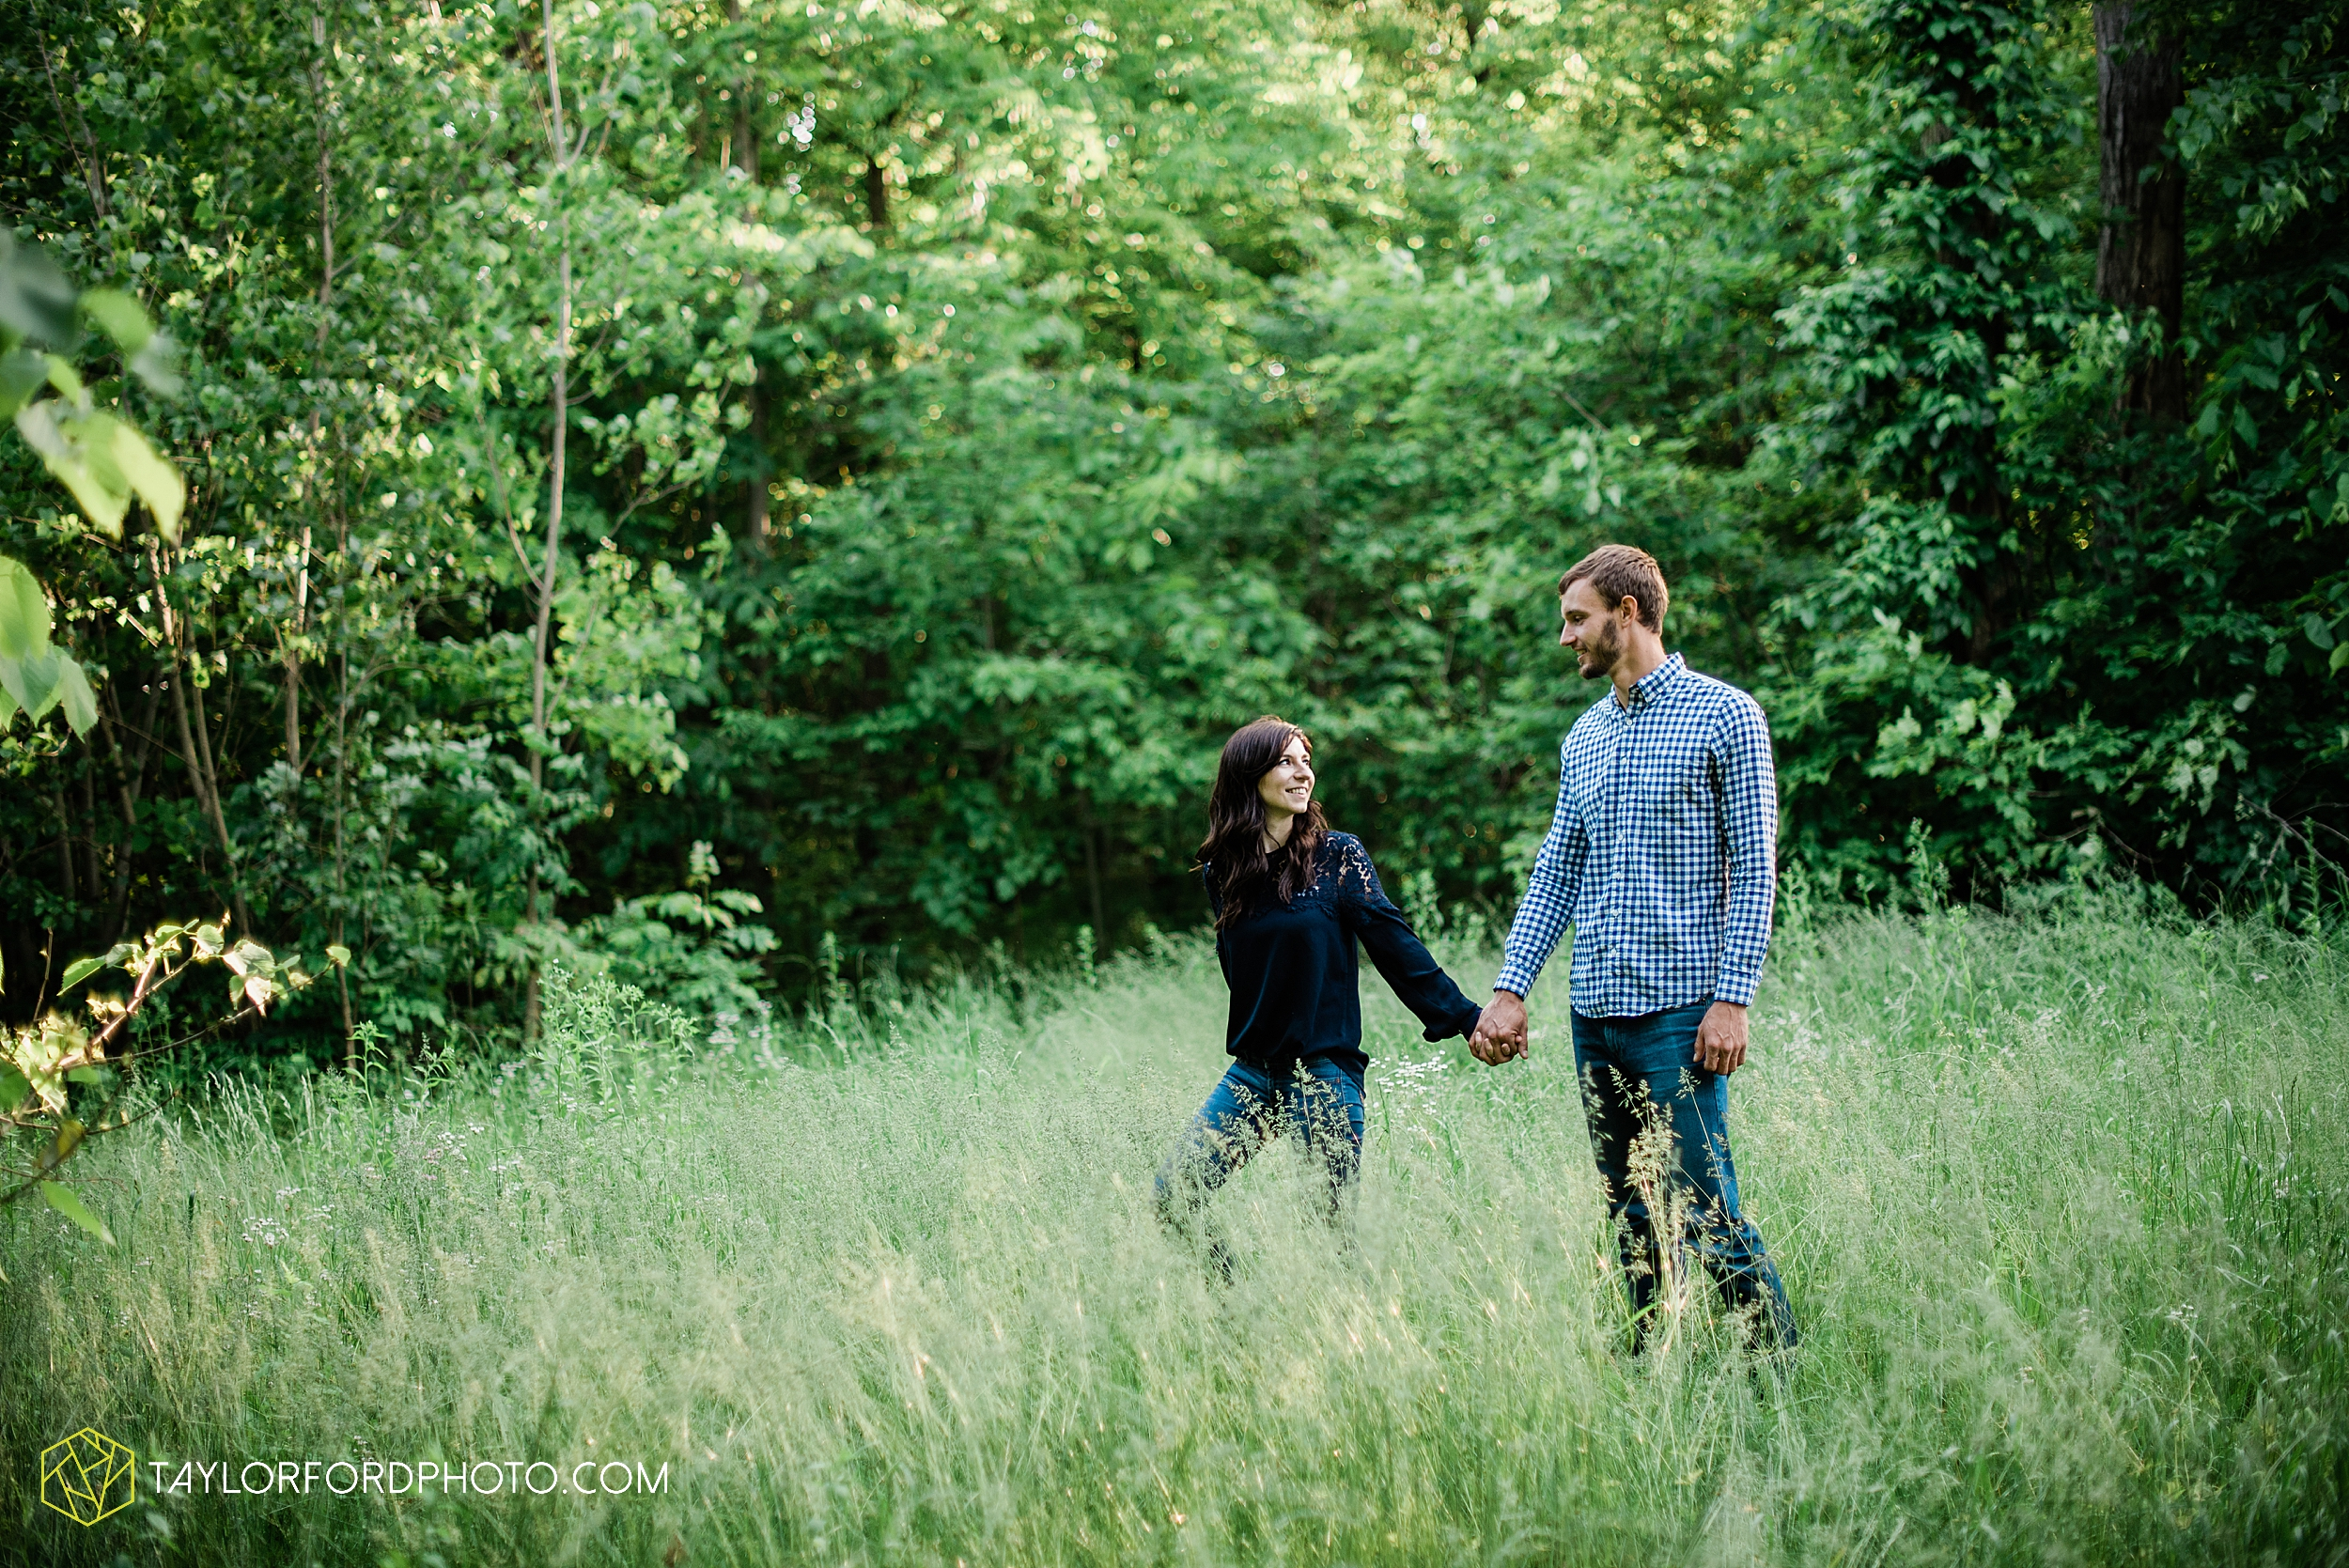 celina-mercer-county-ohio-farm-woods-engagement-photographer-photography-taylor-ford-hirschy-photographer_2992.jpg